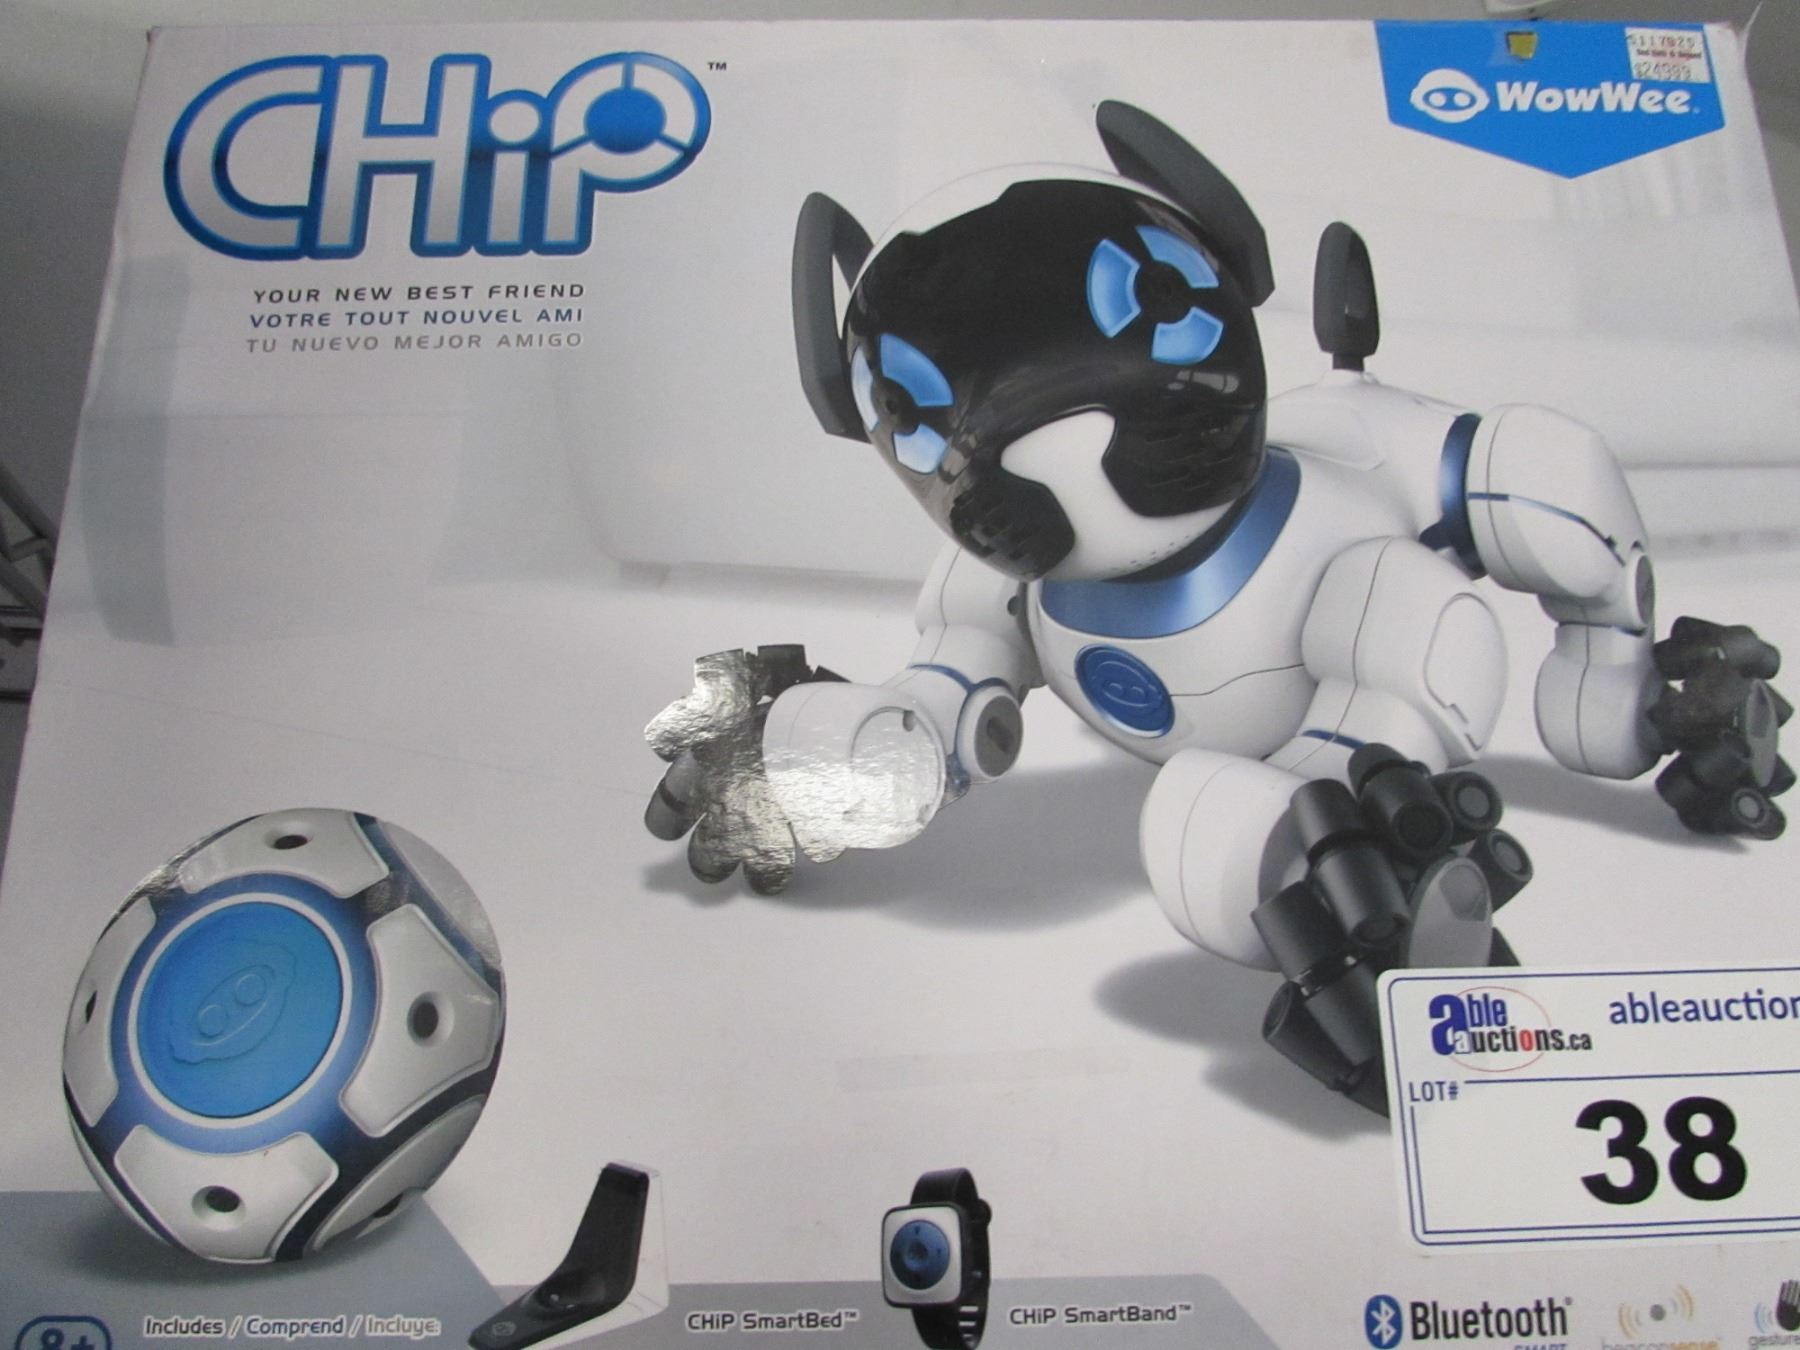 WOWWEE CHIP THE BLUETOOTH ROBOTIC DOG